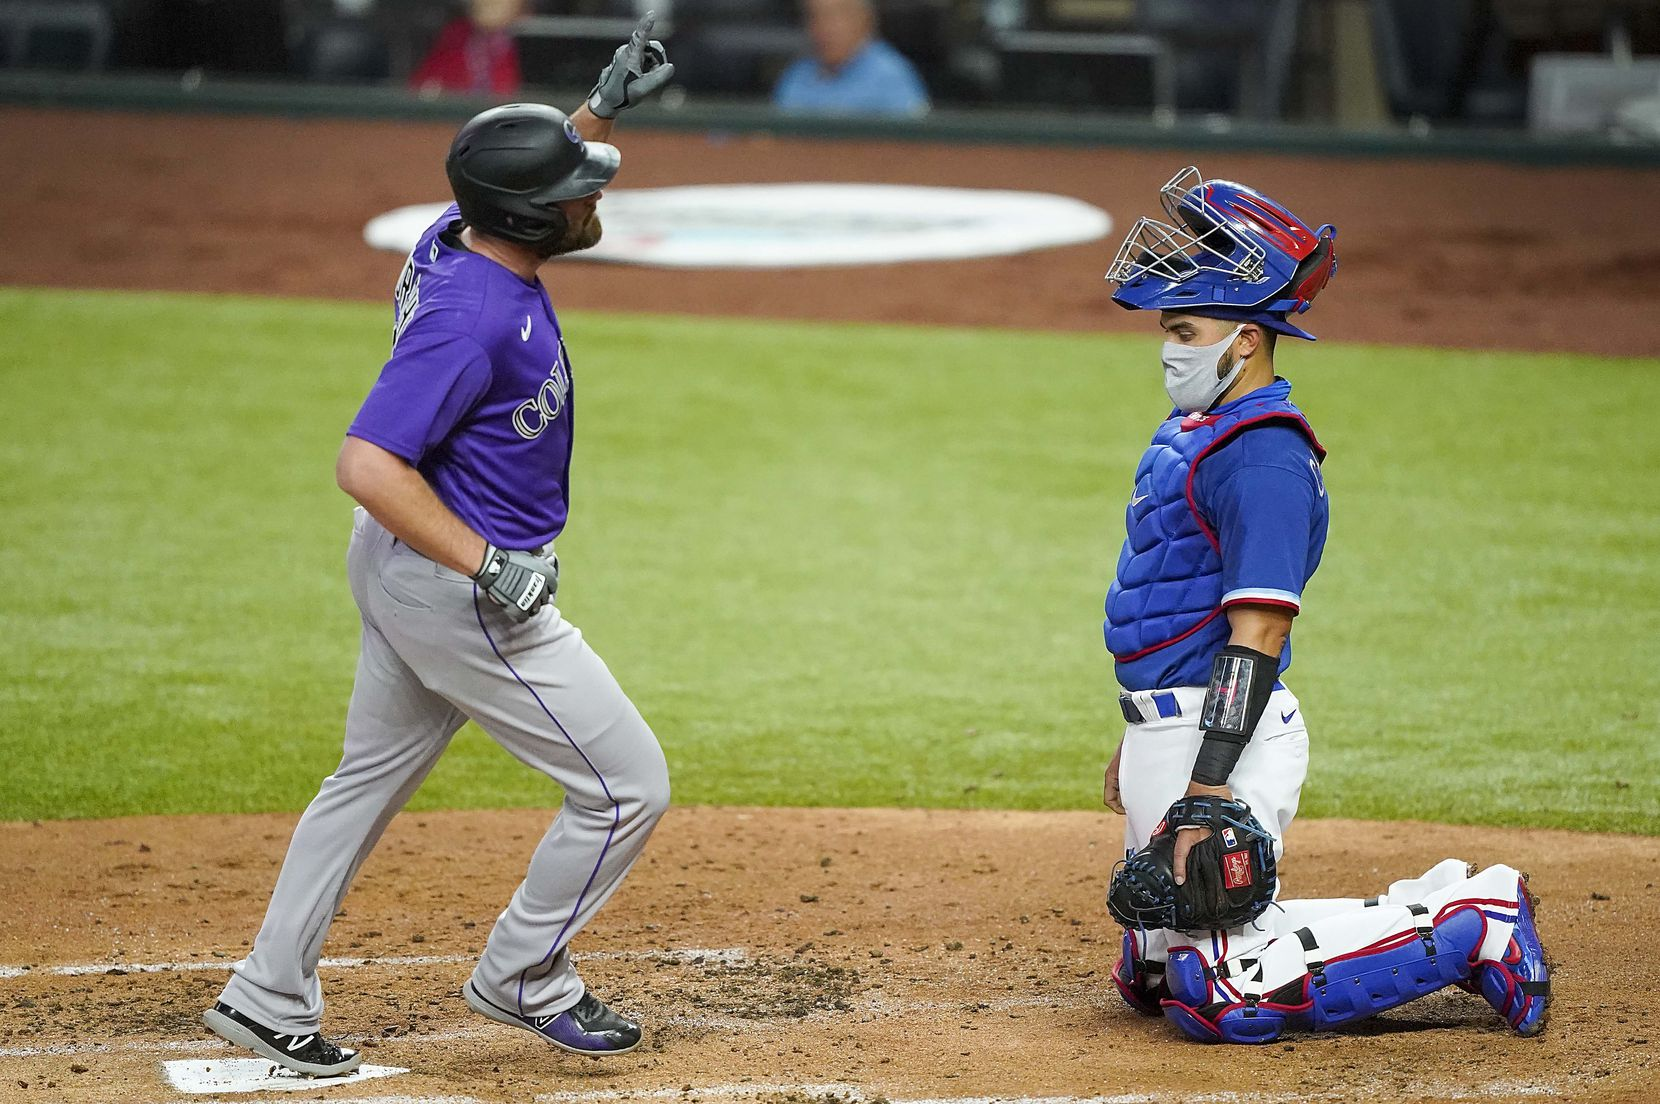 Texas Rangers catcher Robinson Chirinos watches as Colorado Rockies first baseman Daniel Murphy celebrates while crossing home after hitting a solo home run during the second inning of an exhibition game at Globe Life Field on Tuesday, July 21, 2020.